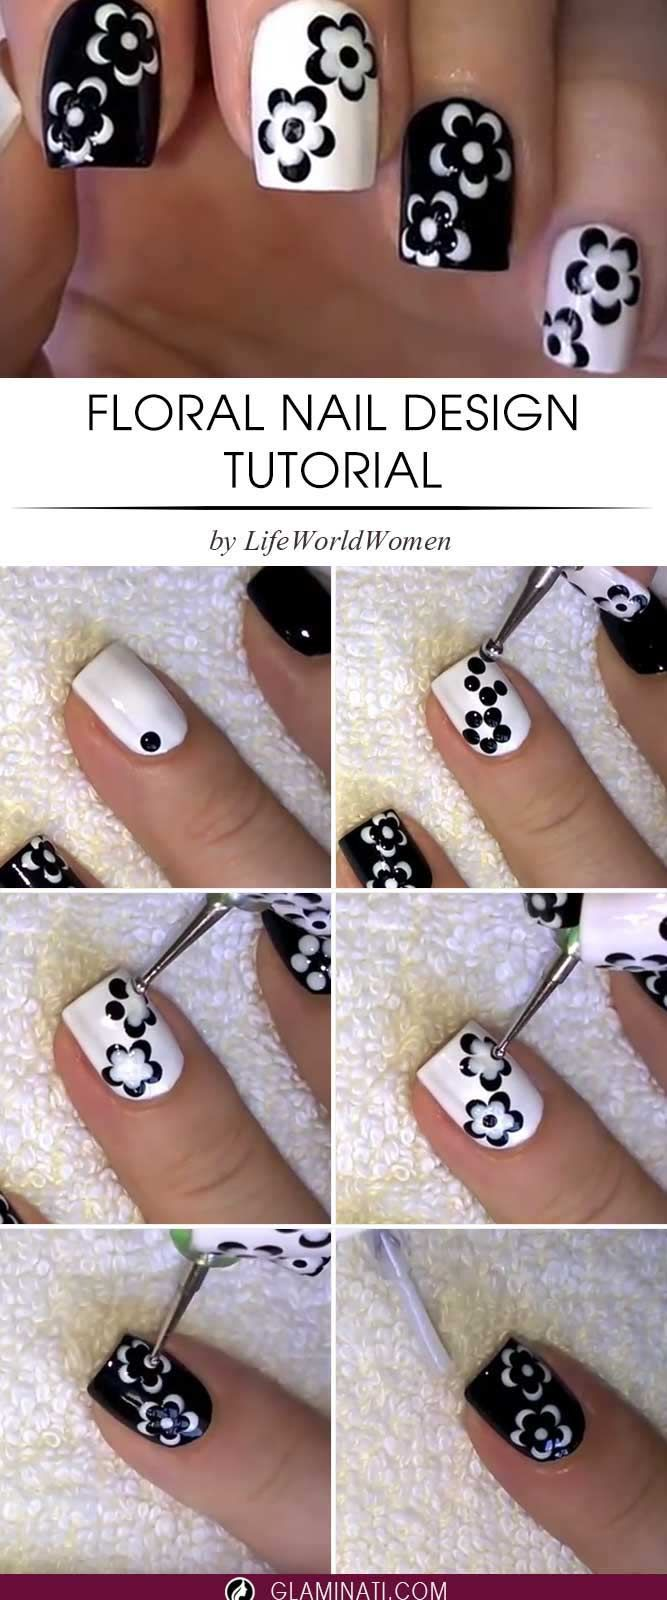 13 Three-Step Easy Nail Designs And Tutorials You Will Absolutely Love